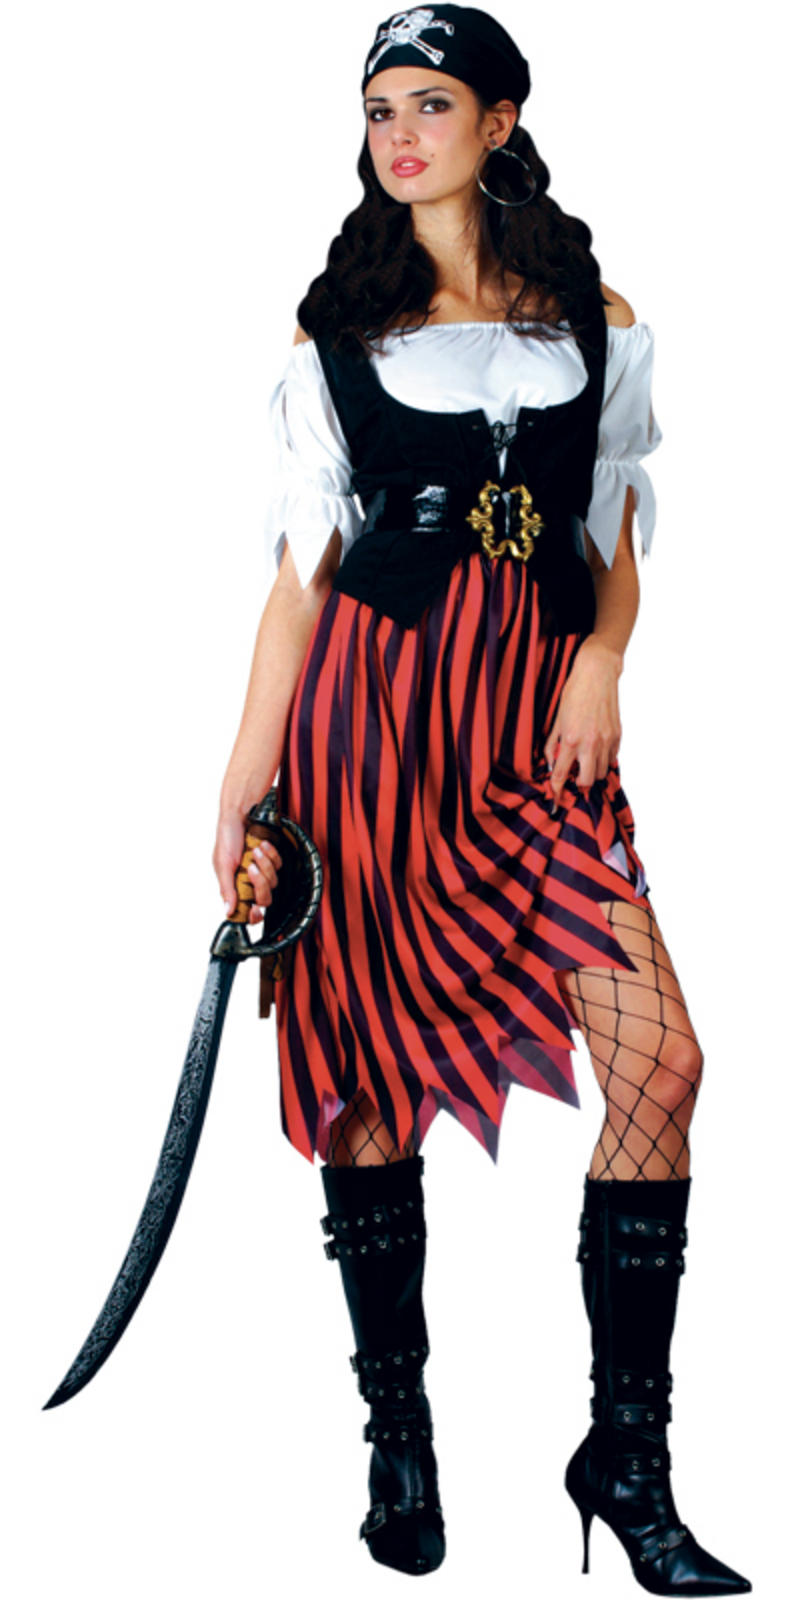 Tween girl pirate costume - photo#20